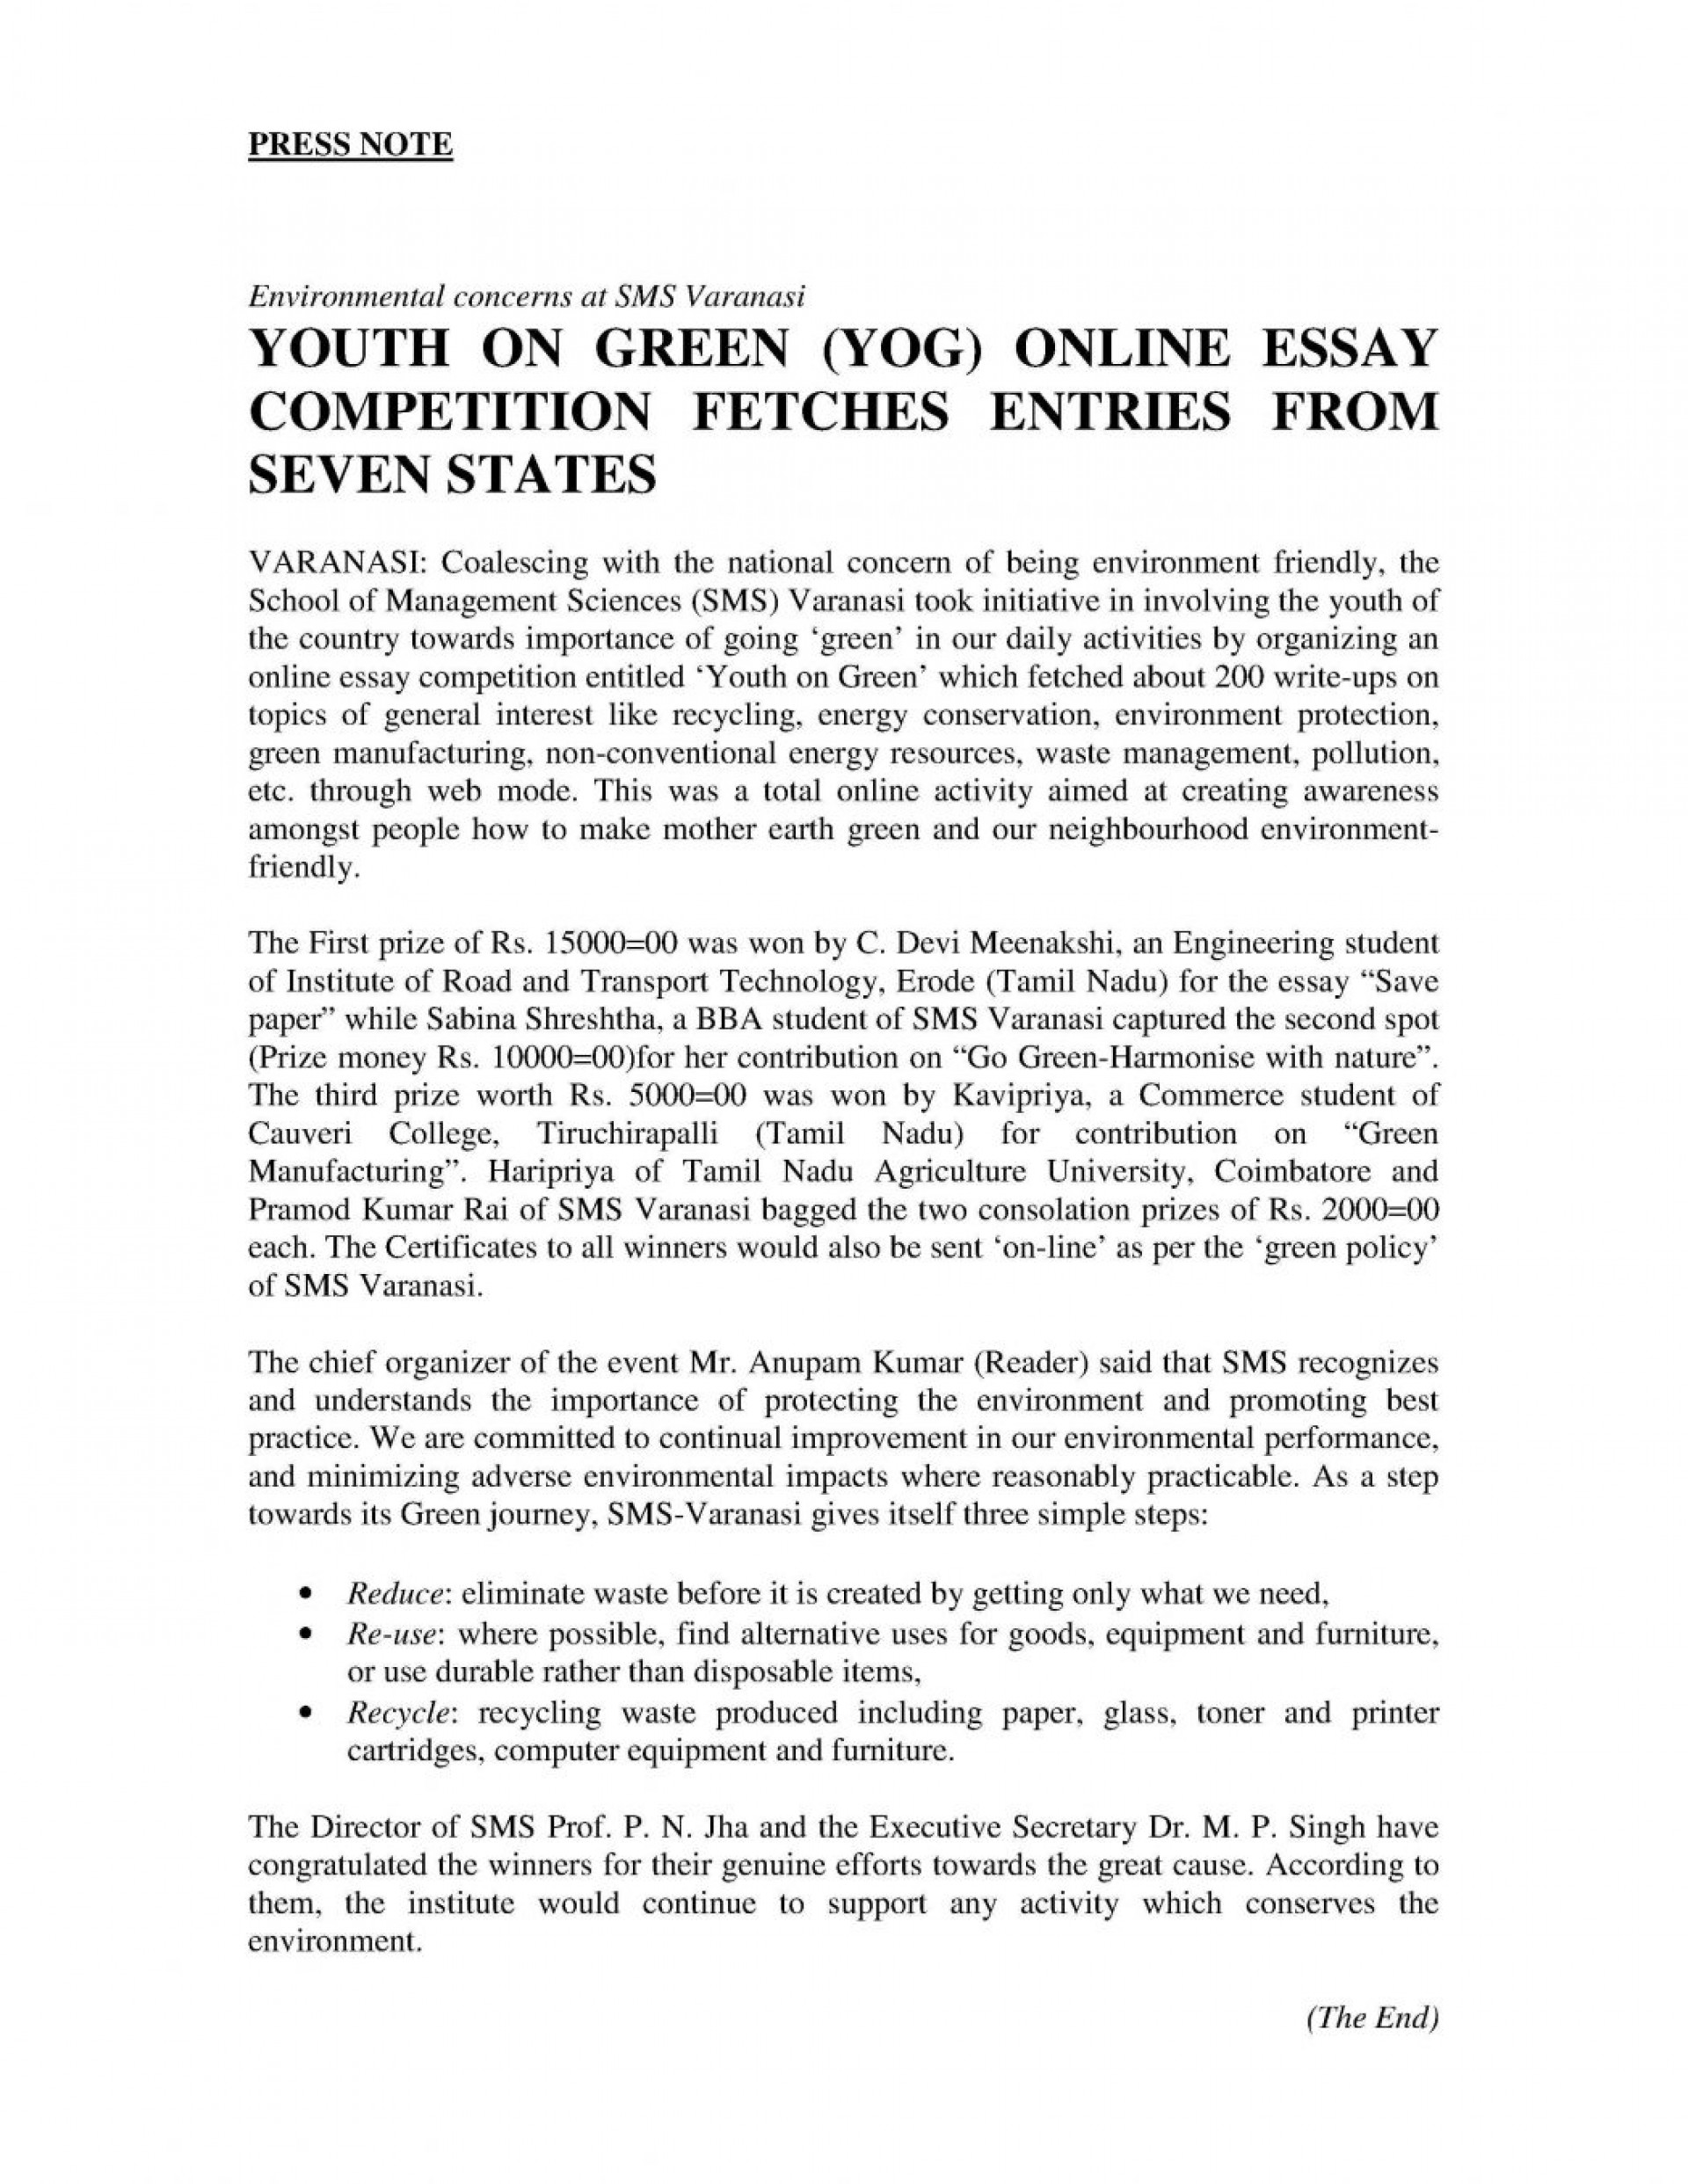 020 Best Essays For College Essay On Good Habits How Tot Application Online Yog Press Re About Yourself Examples Your Background Failure Prompt Off Hook 1048x1356 Example Amazing To Start An Analysis A Book Ways With Question Two Books 1920